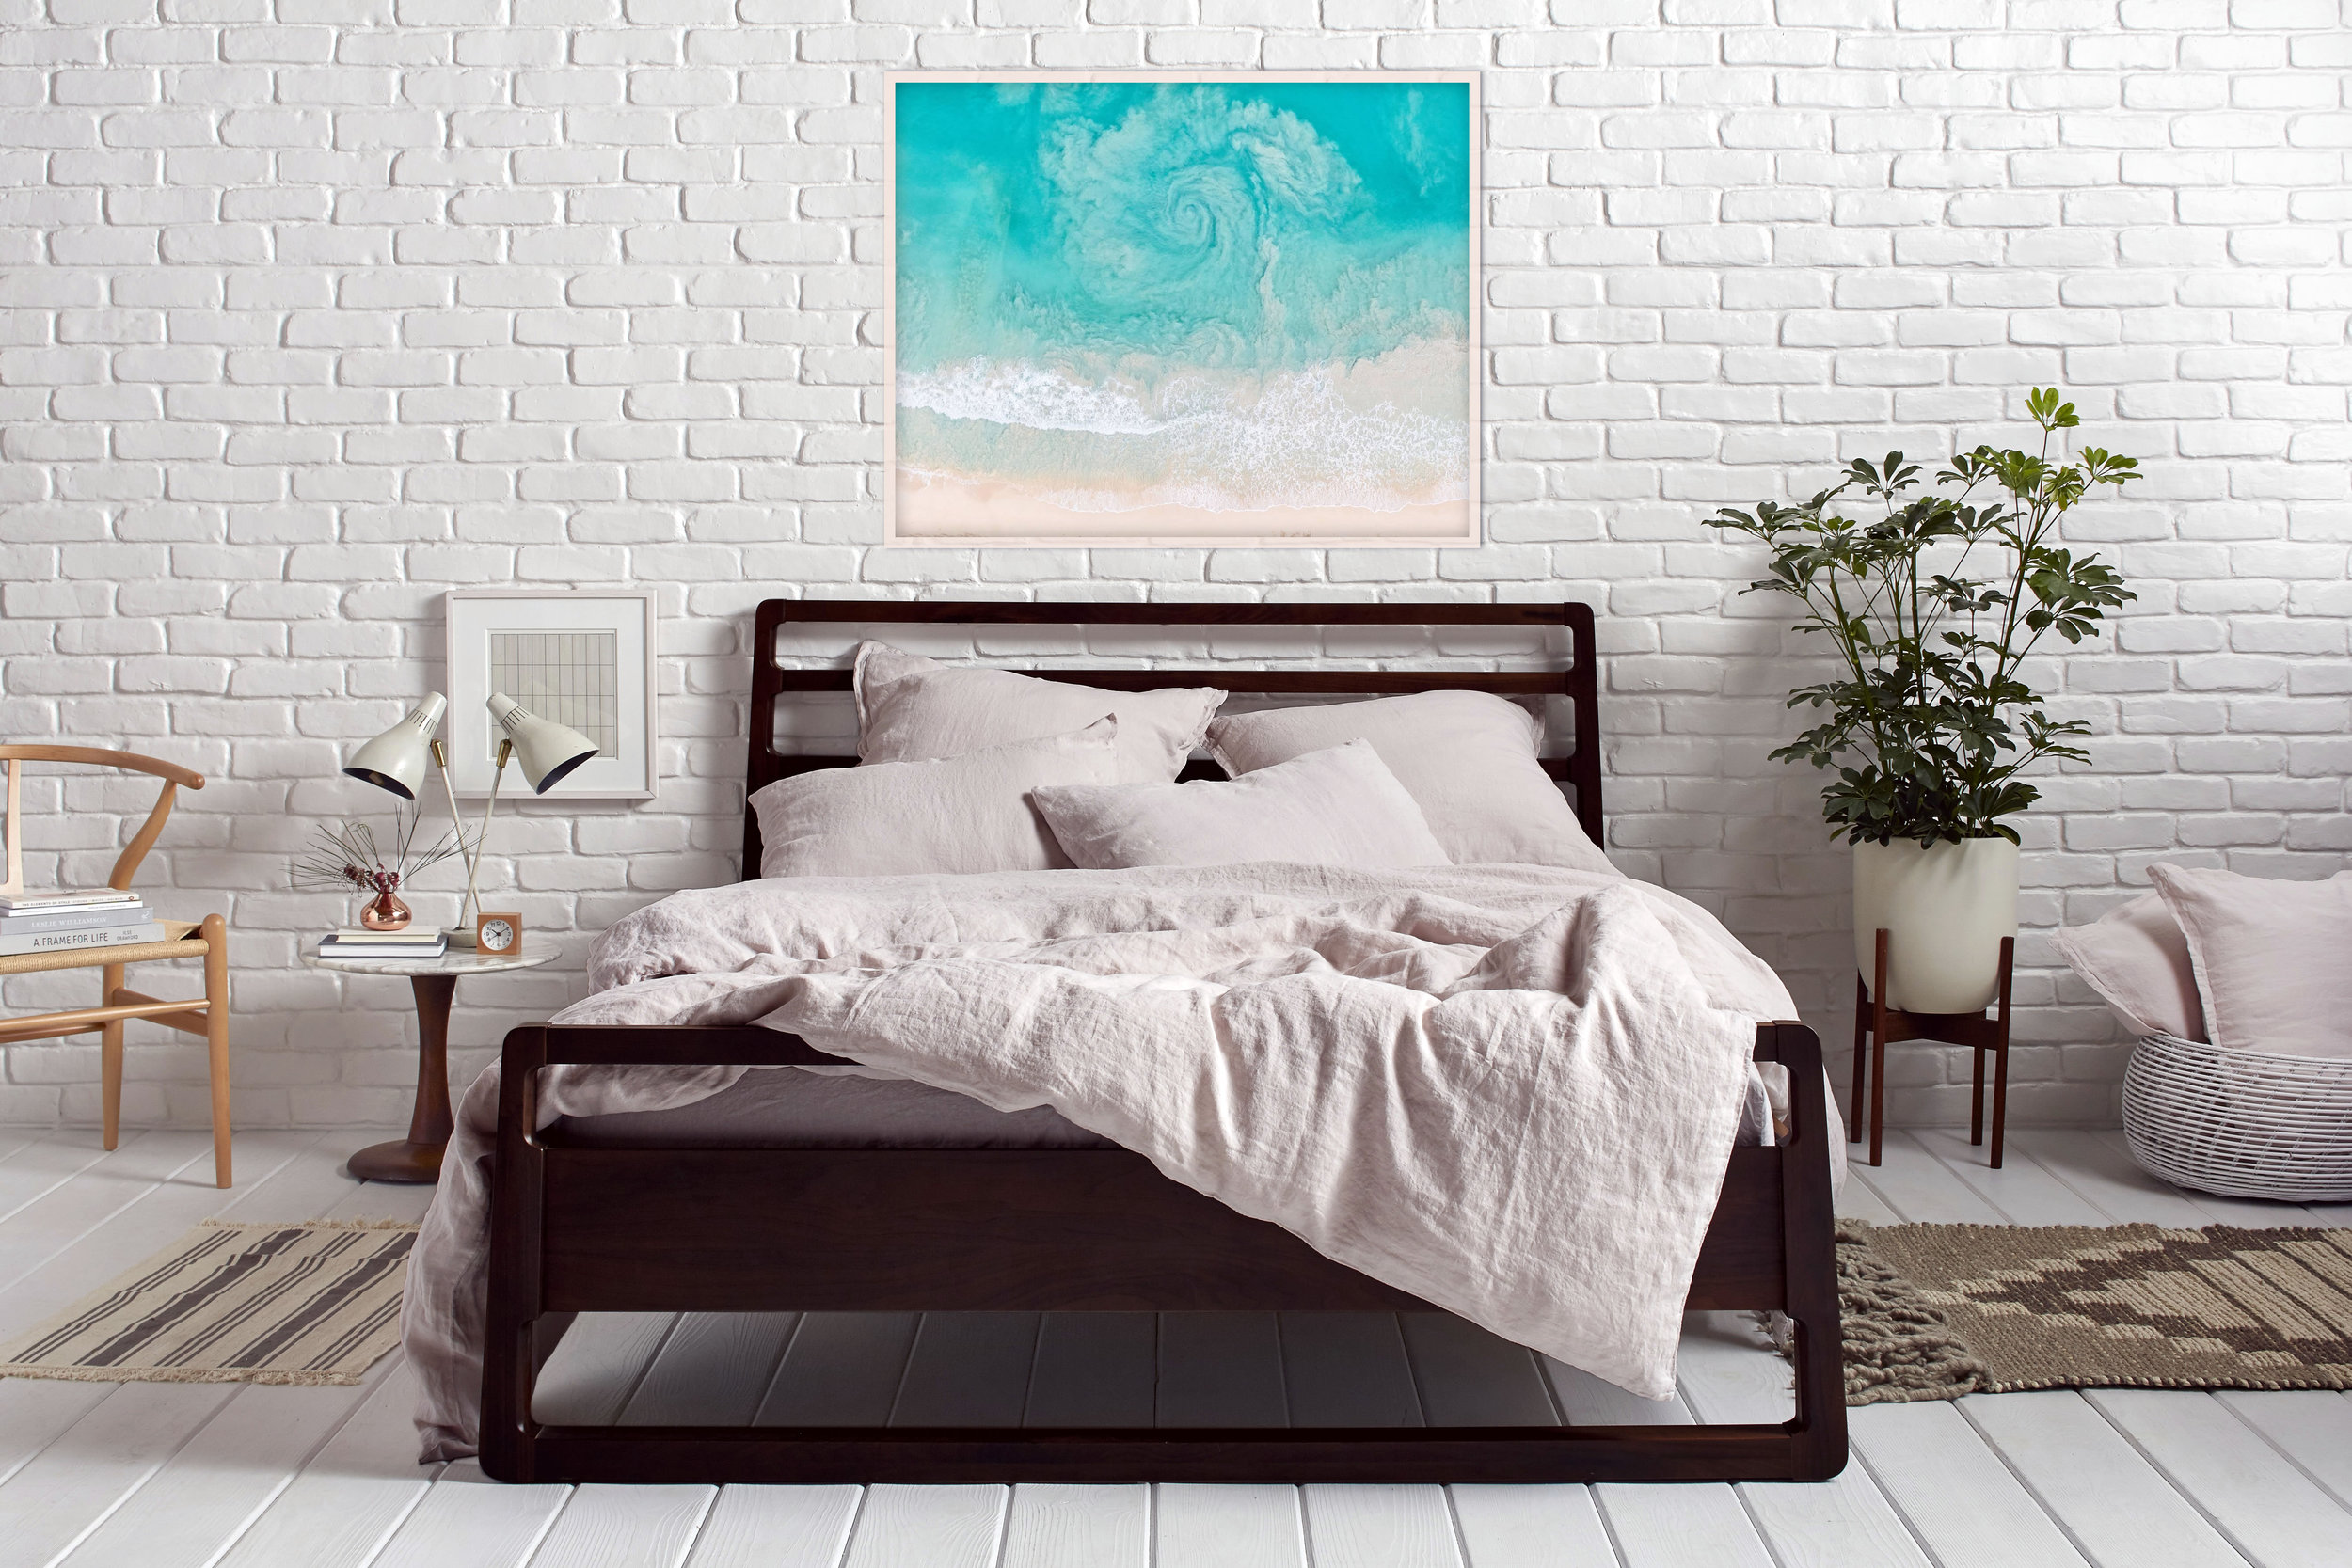 Win a beautiful signed Gray Malin print to update your bedroom